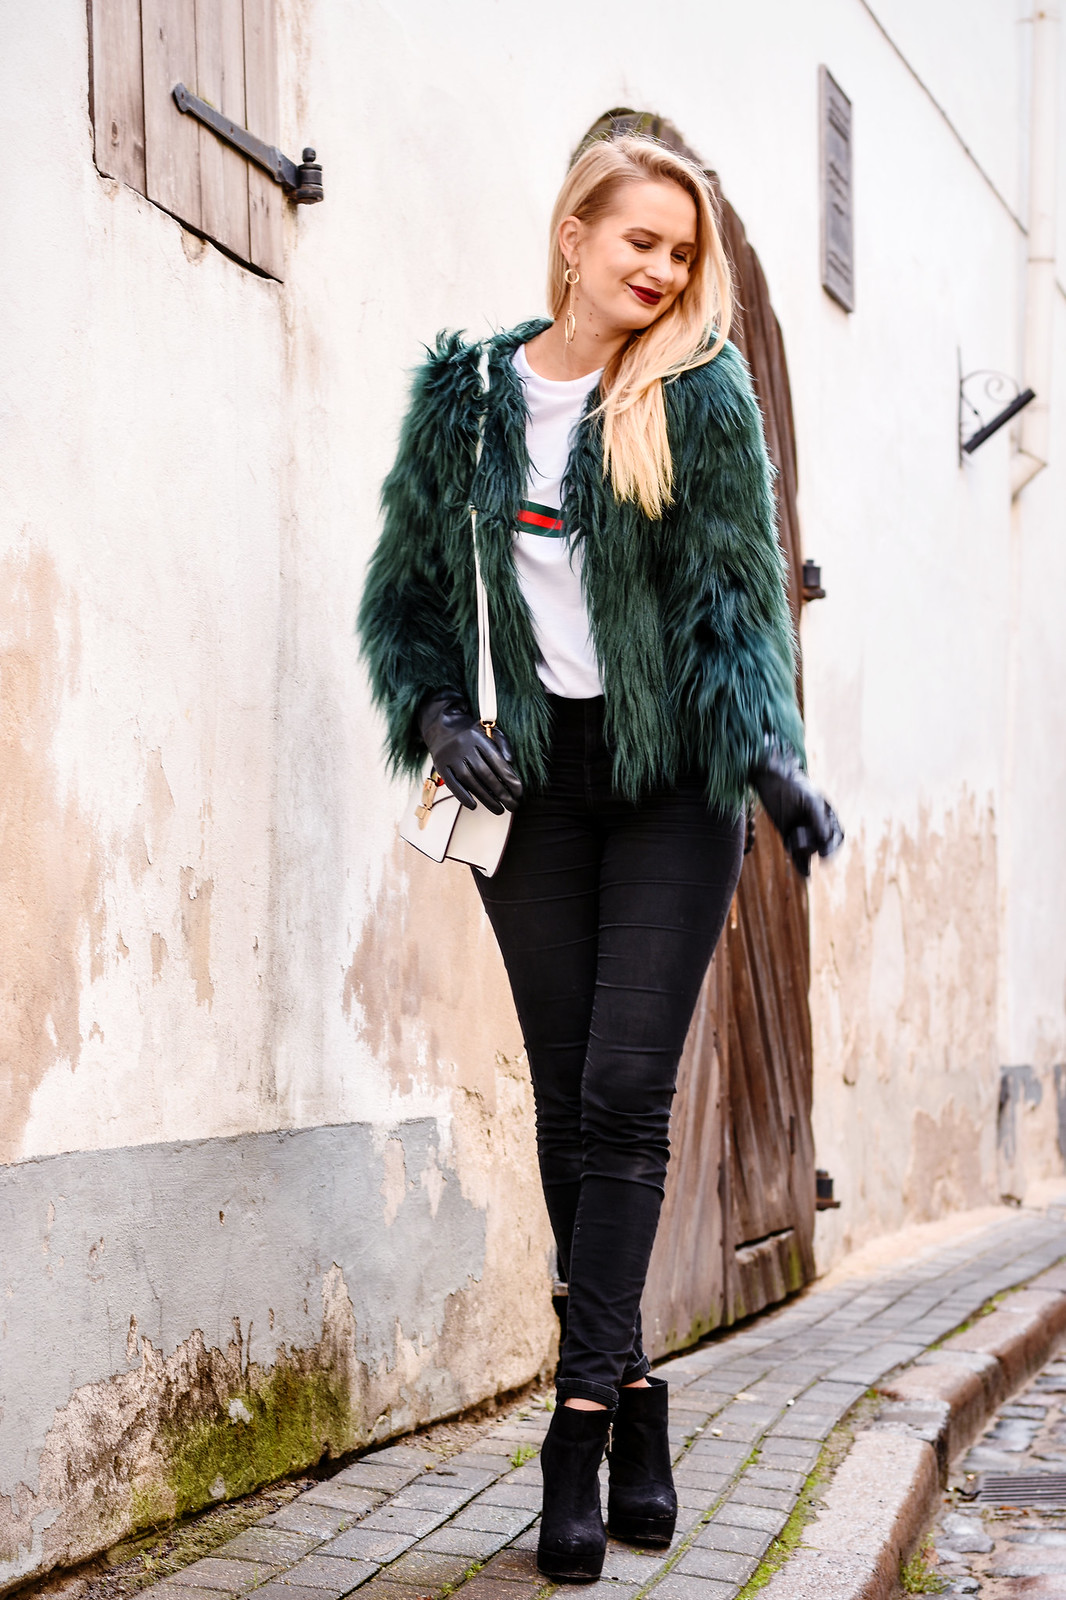 Styling a green faux fur jacket